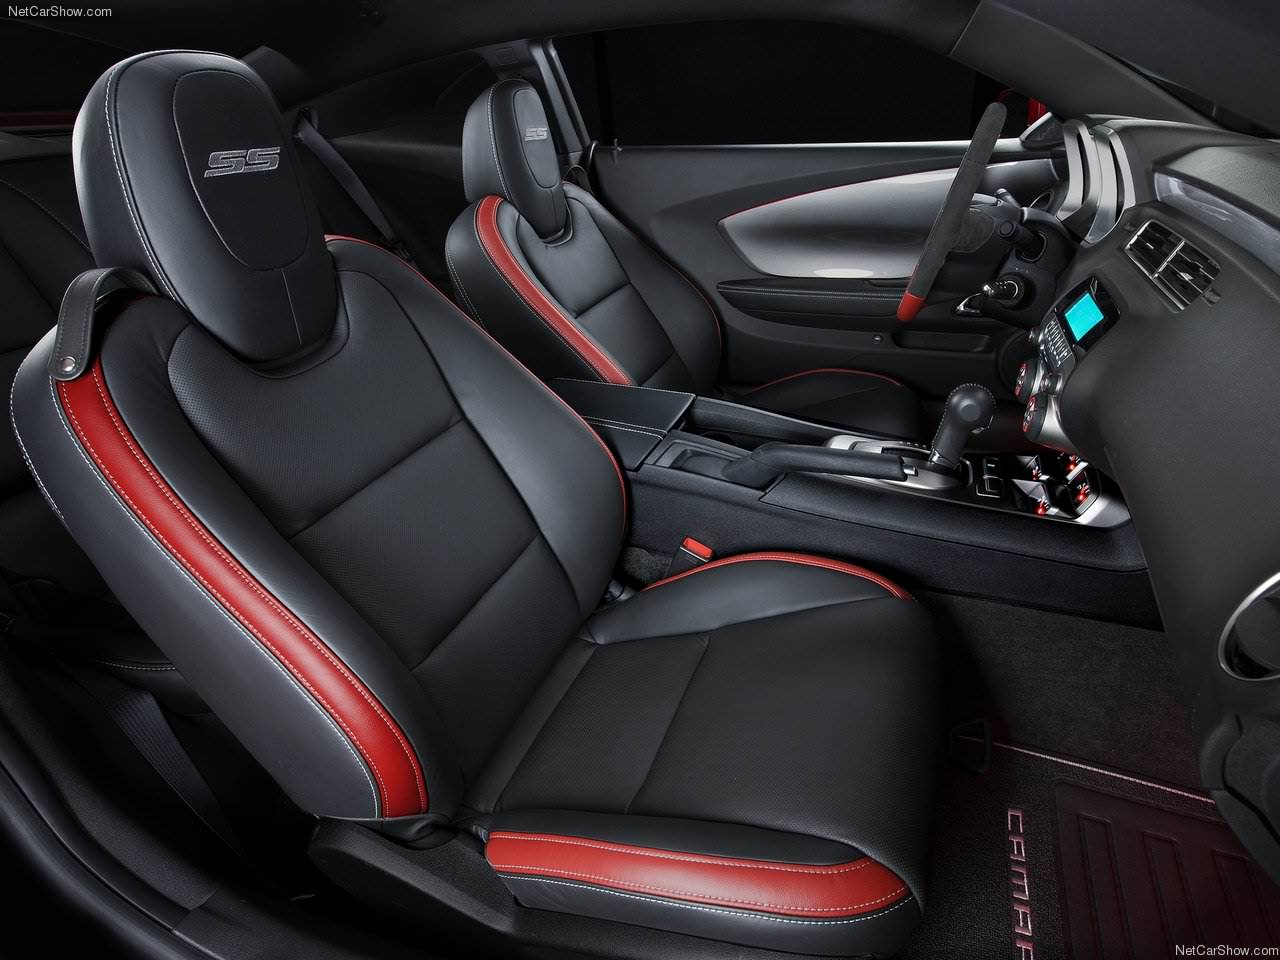 leather seat pics camaro5 chevy camaro forum camaro zl1 ss and v6 forums. Black Bedroom Furniture Sets. Home Design Ideas